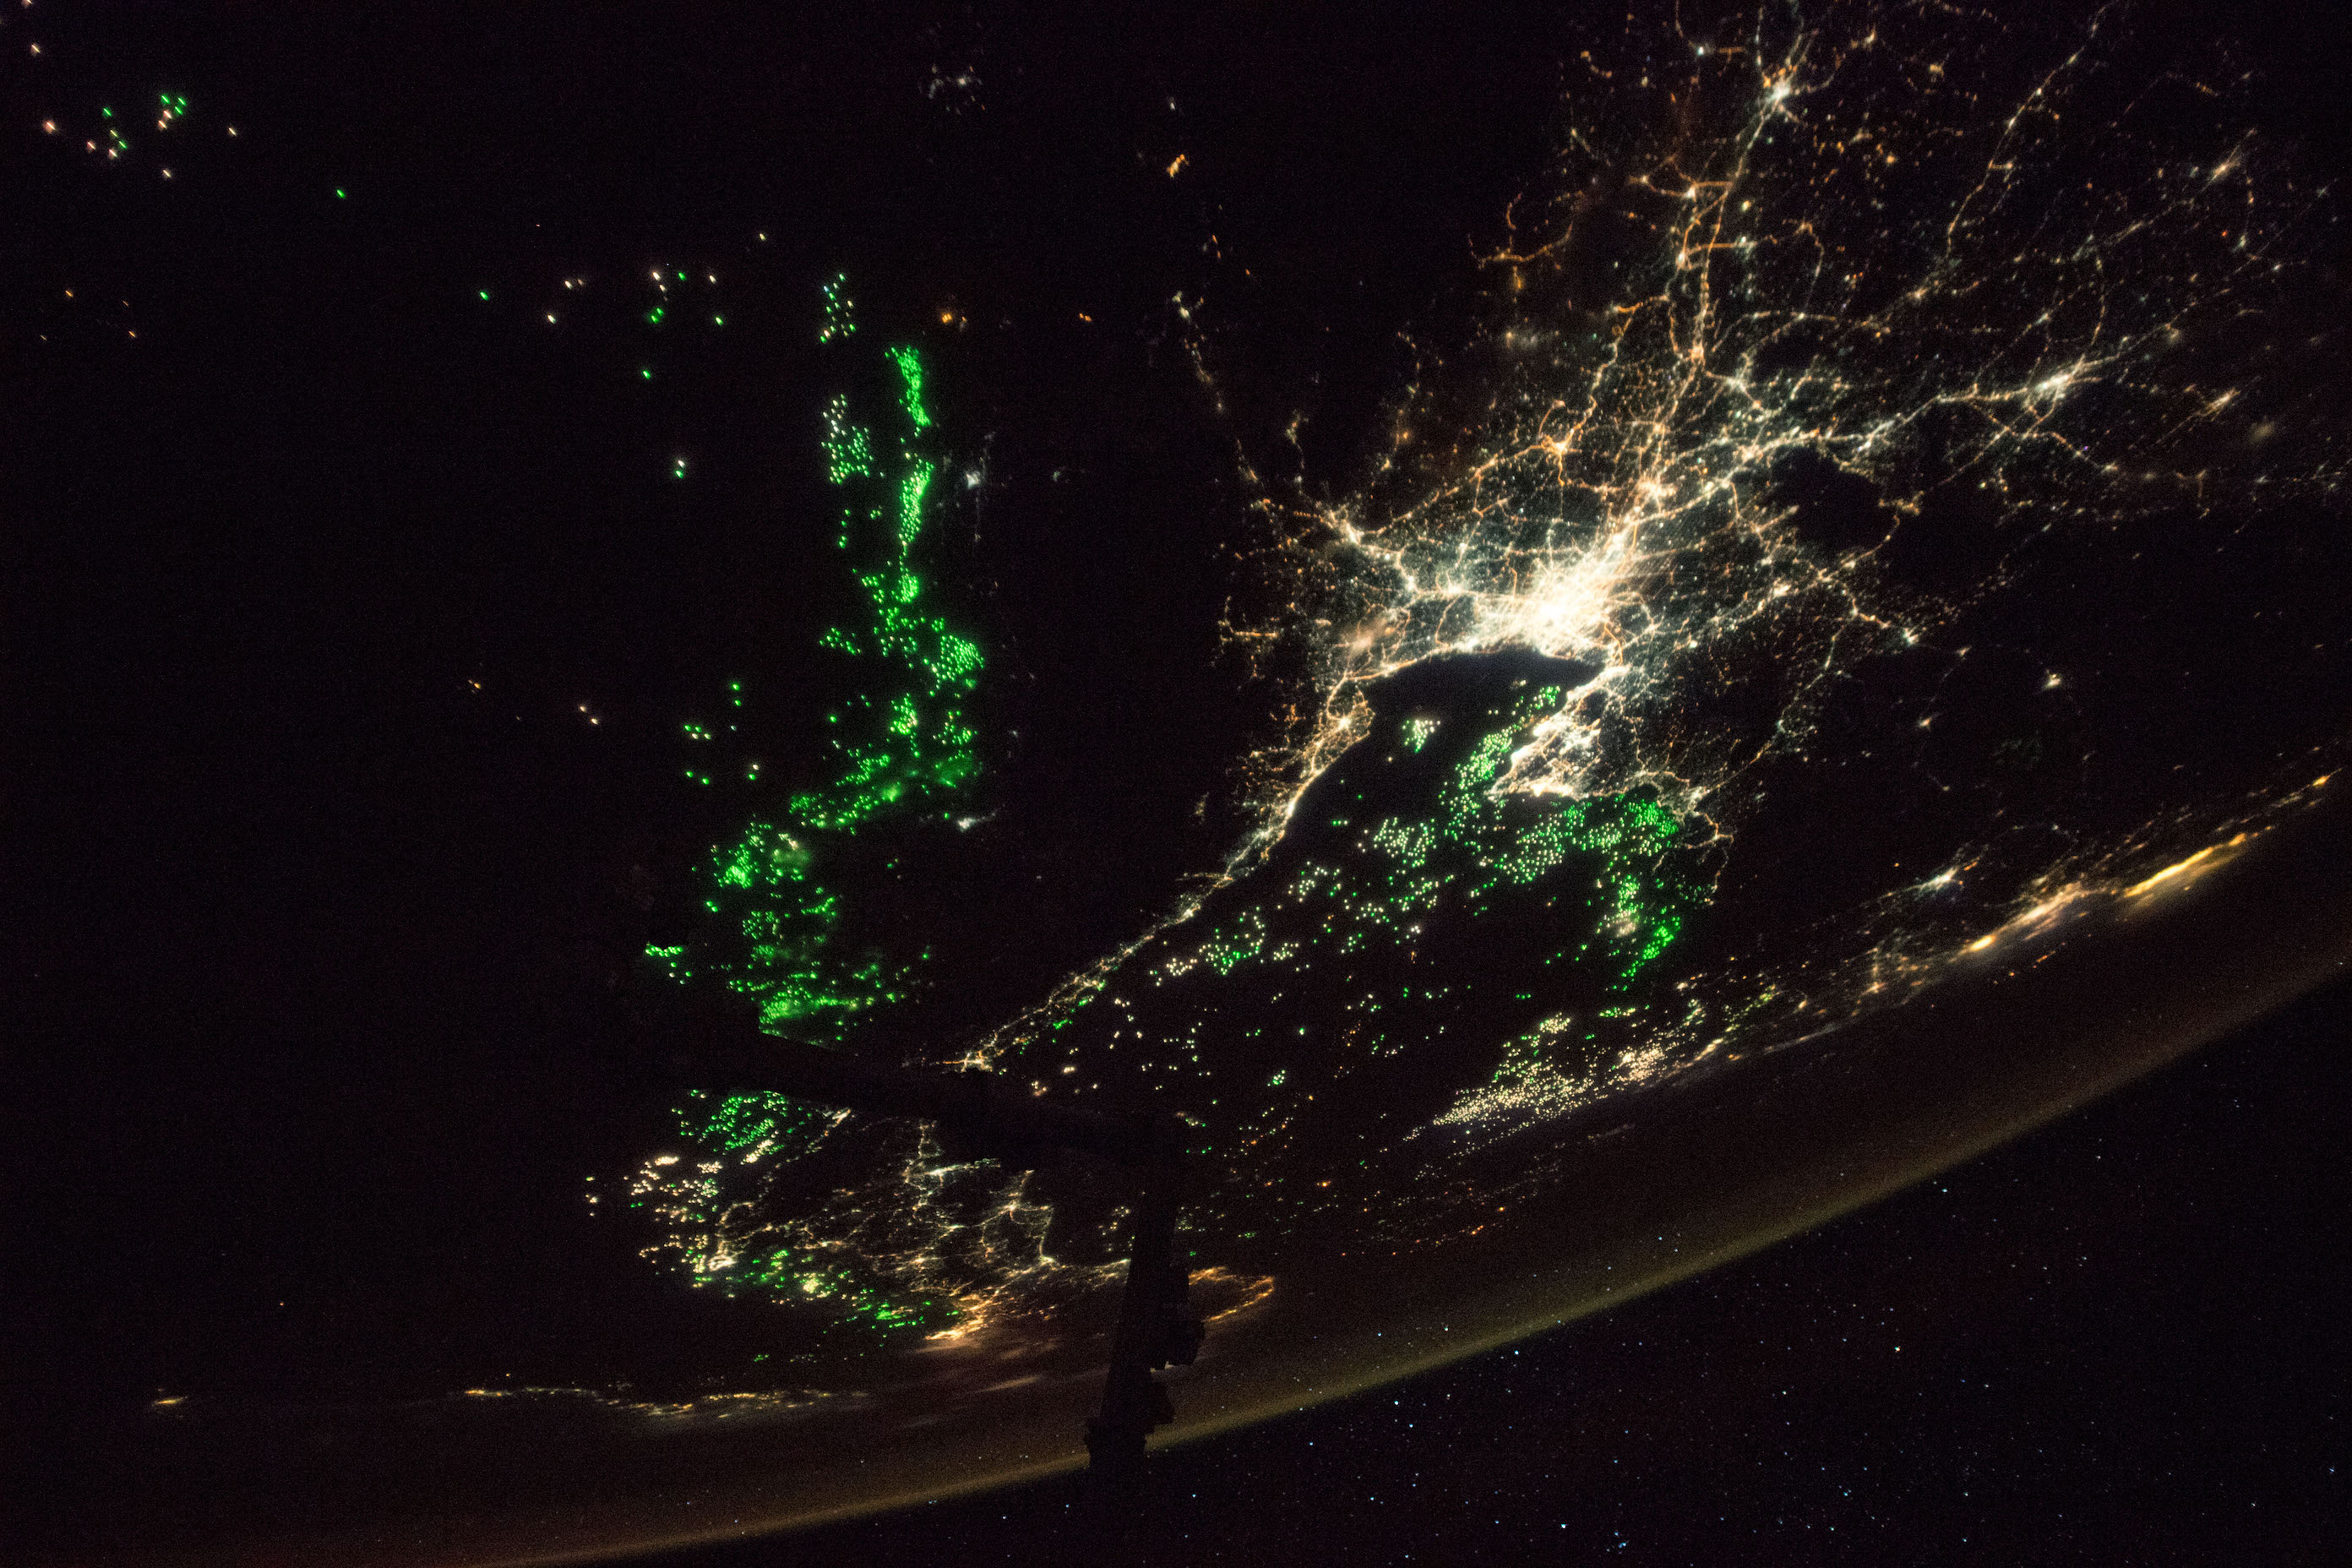 Today's Image of the Day comes from the NASA Earth Observatory and features a look at the city of Bangkok lit up by city lights and fishing boats.